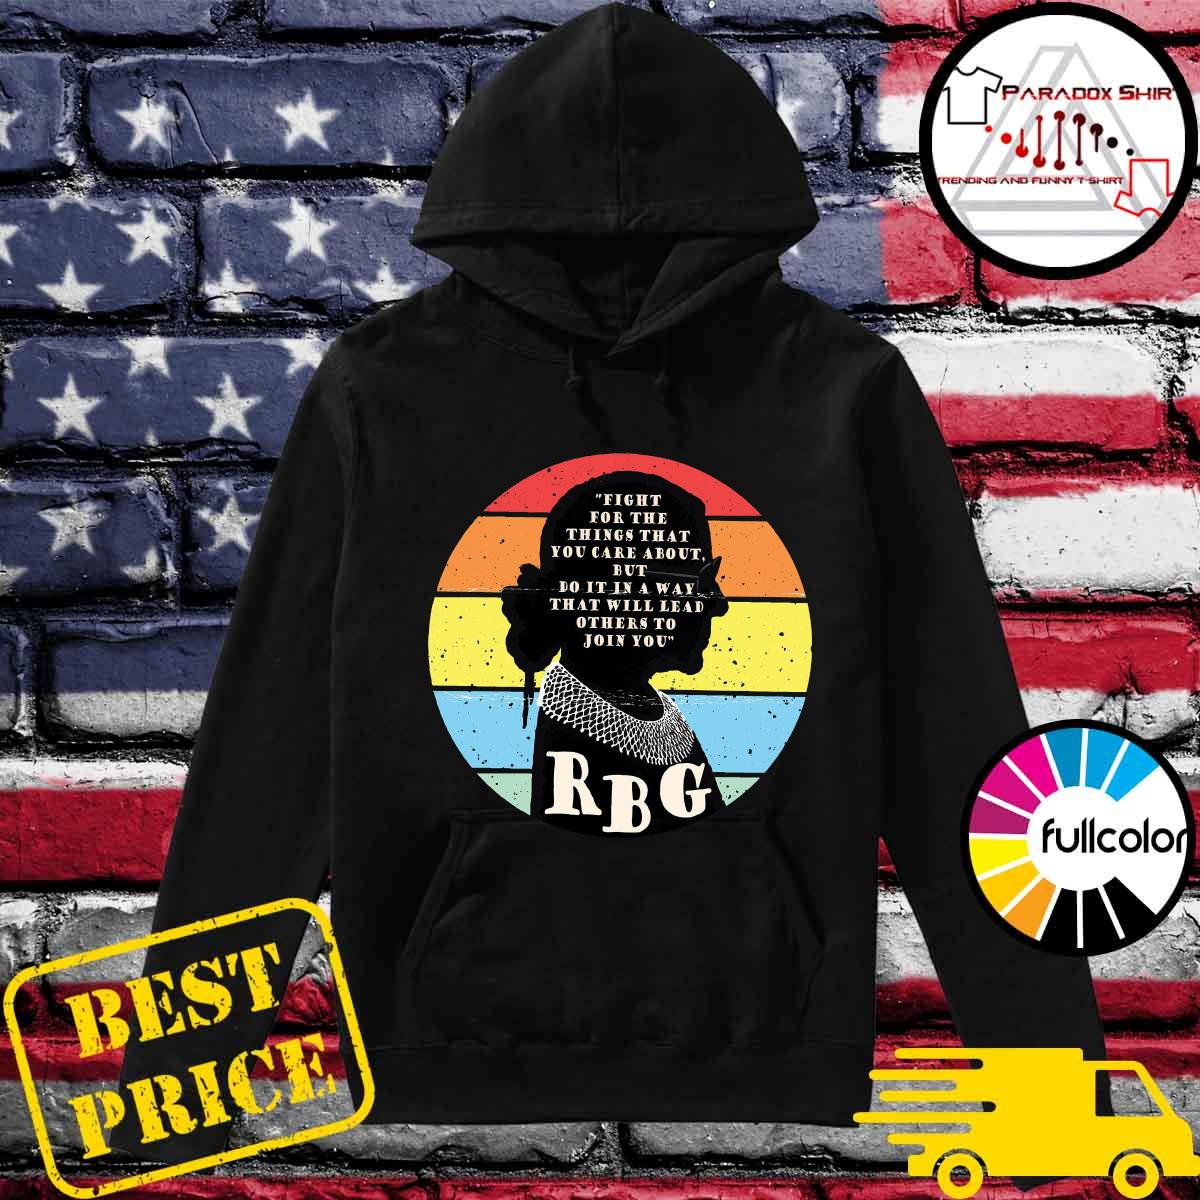 RBG Ruth Bader Ginsburg Fight For The Thing That You Care About But Do IT In A Way Vintage Shirt Hoodie